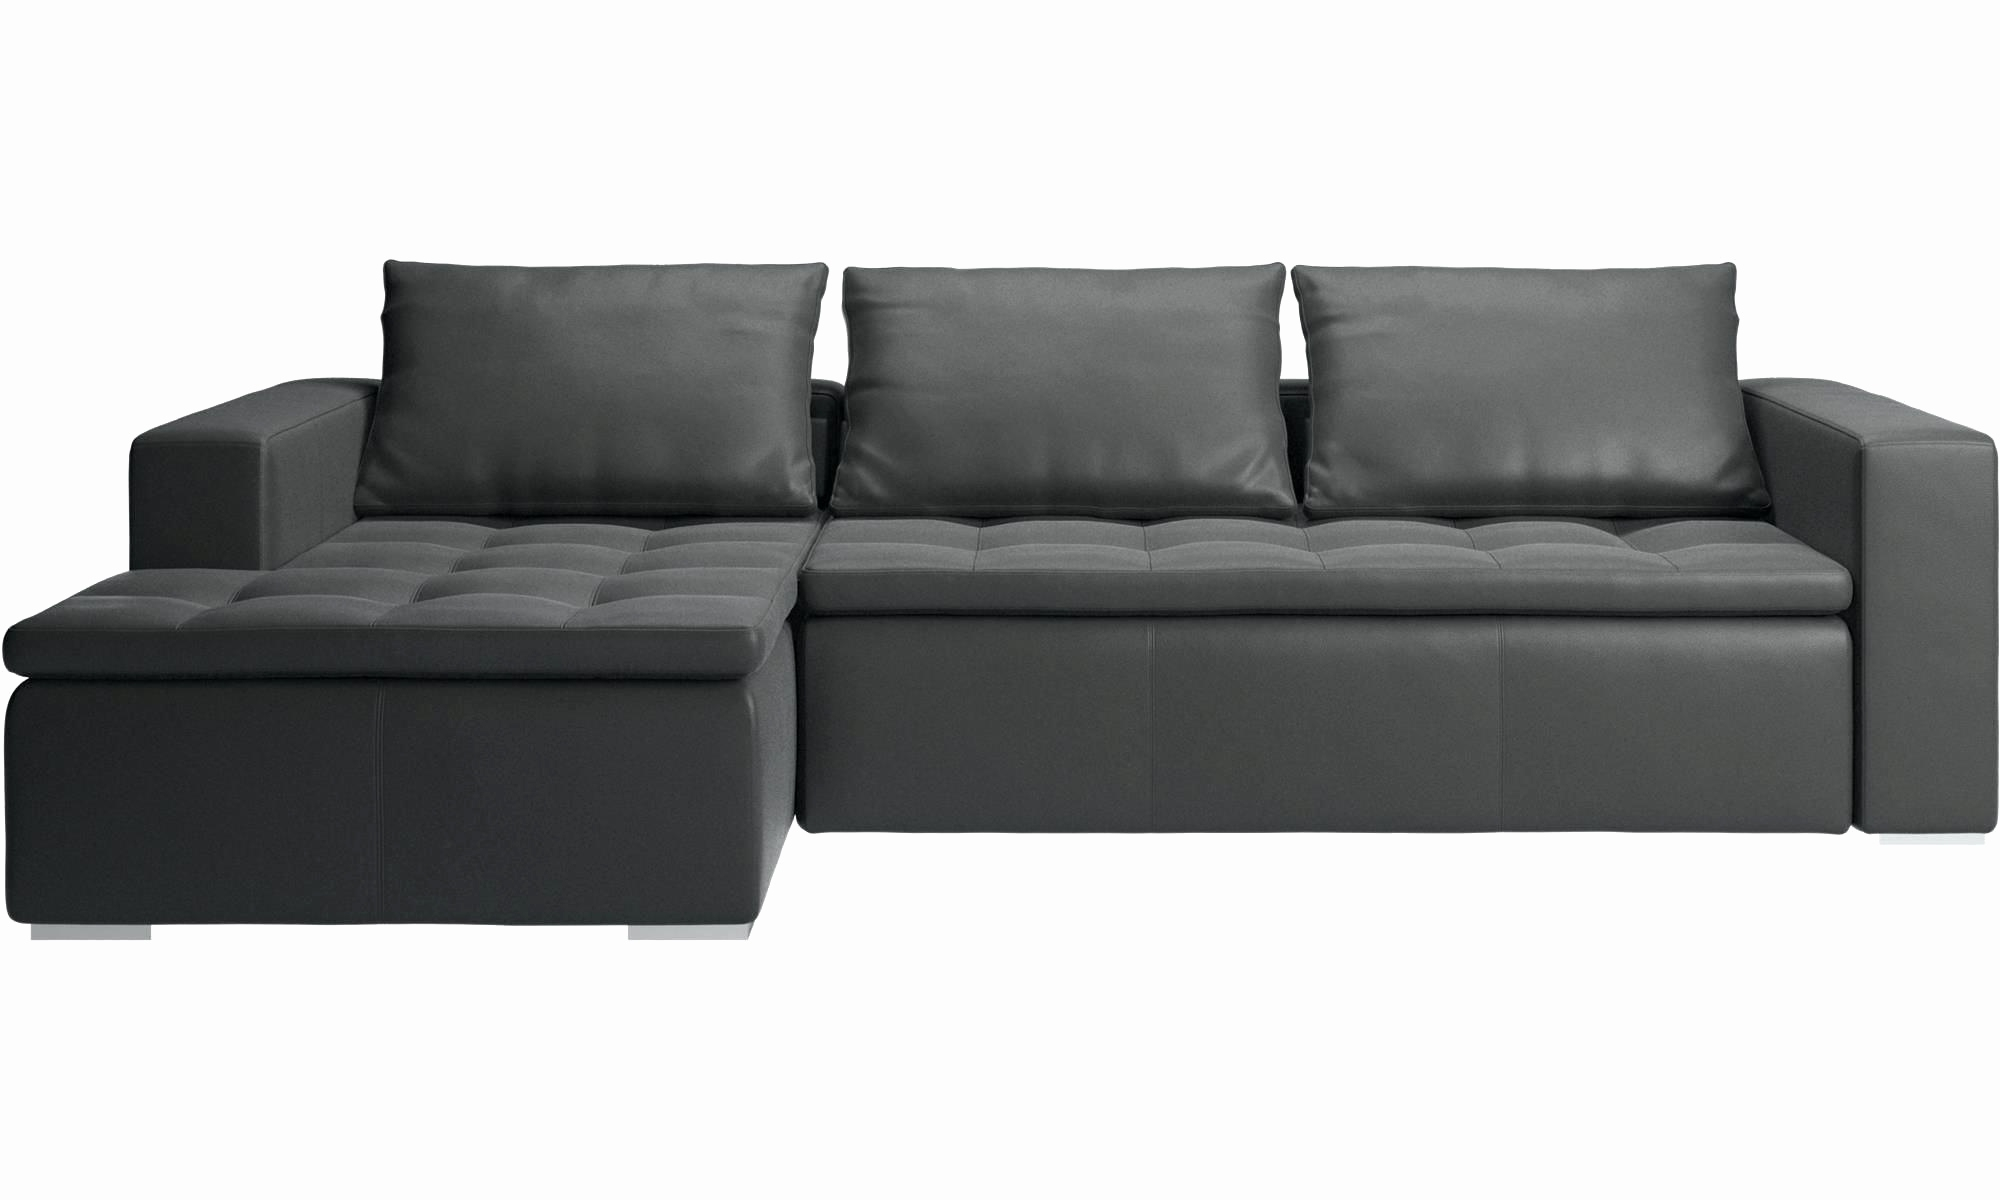 Couch Chaise Lounges In Recent Fresh Chaise Lounge Sofa 2018 – Couches And Sofas Ideas (View 3 of 15)